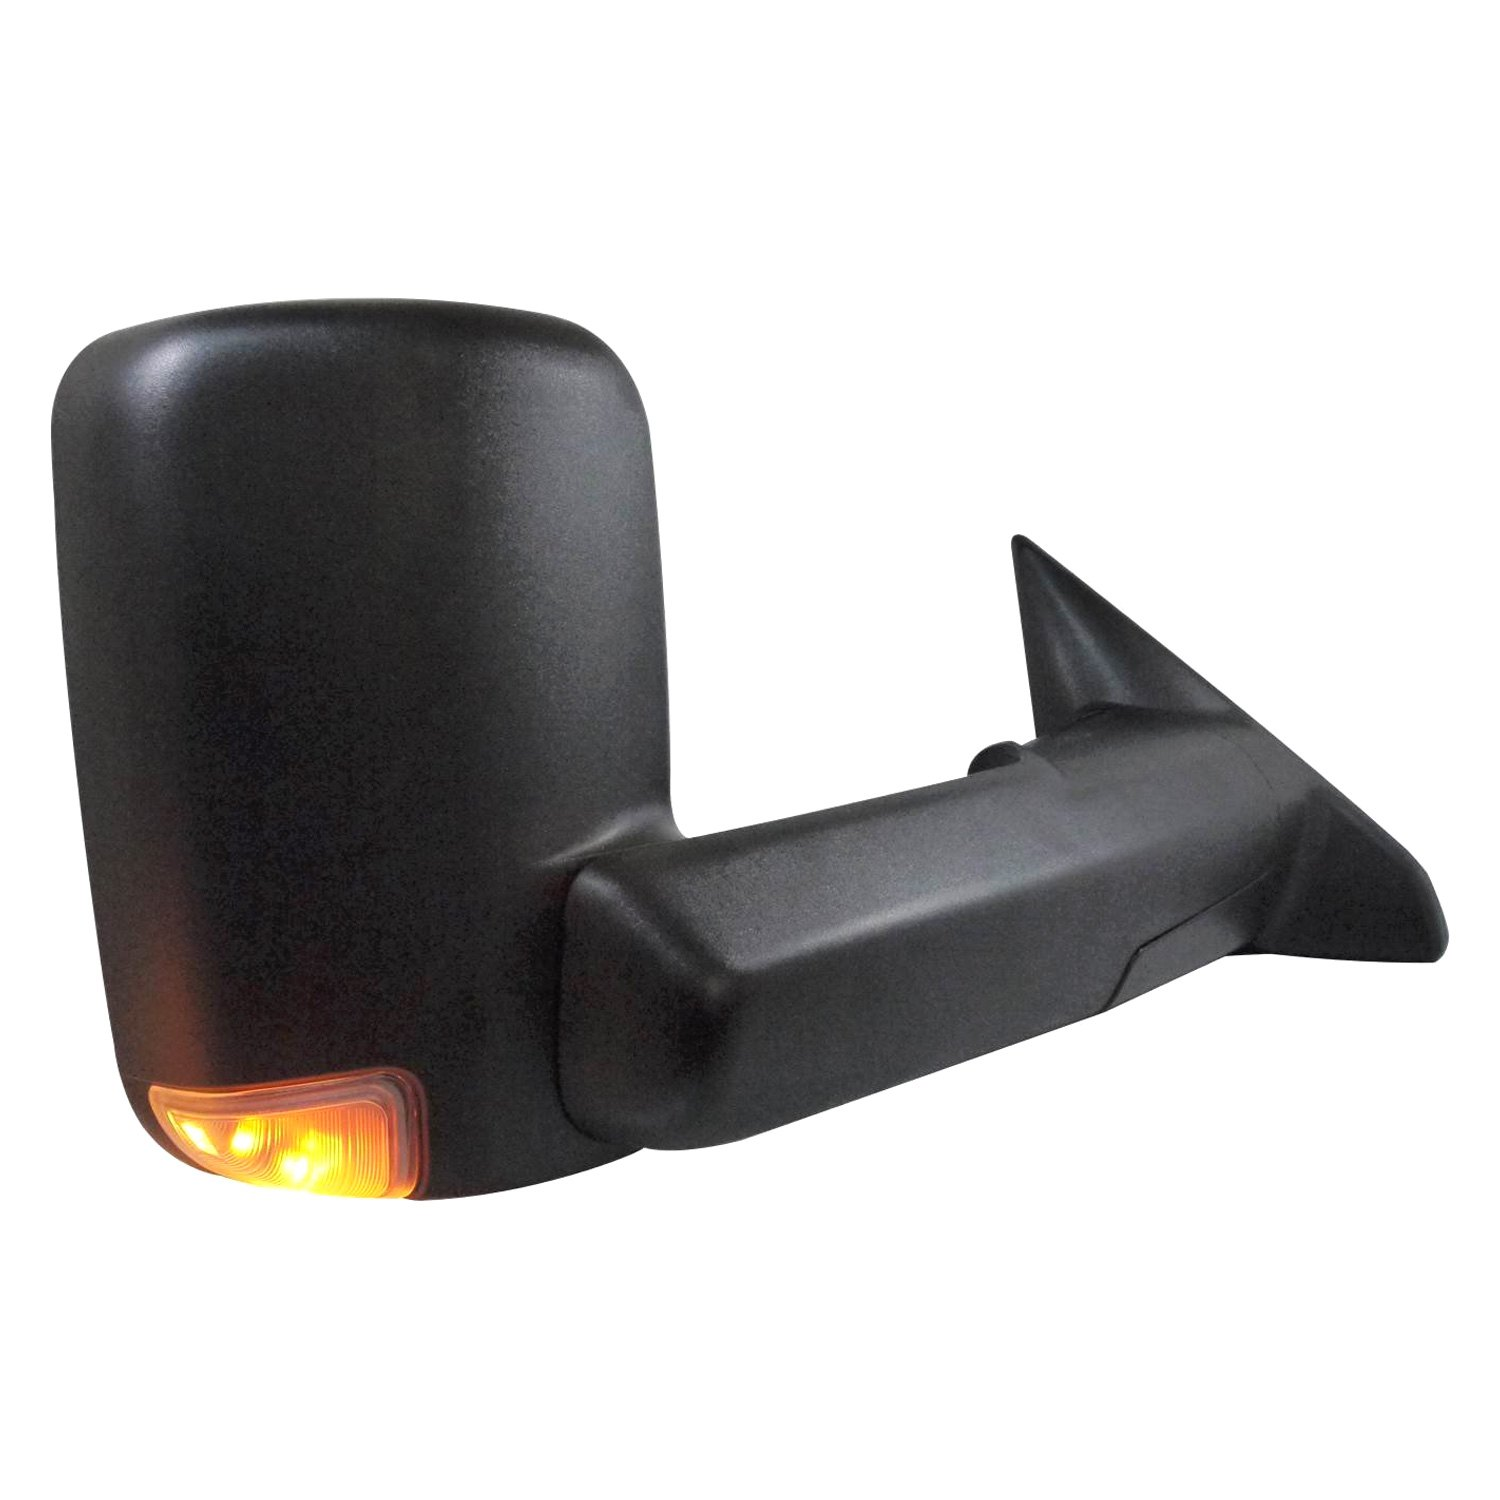 Replace ram 3500 2015 2016 towing mirror for Mirror replacement